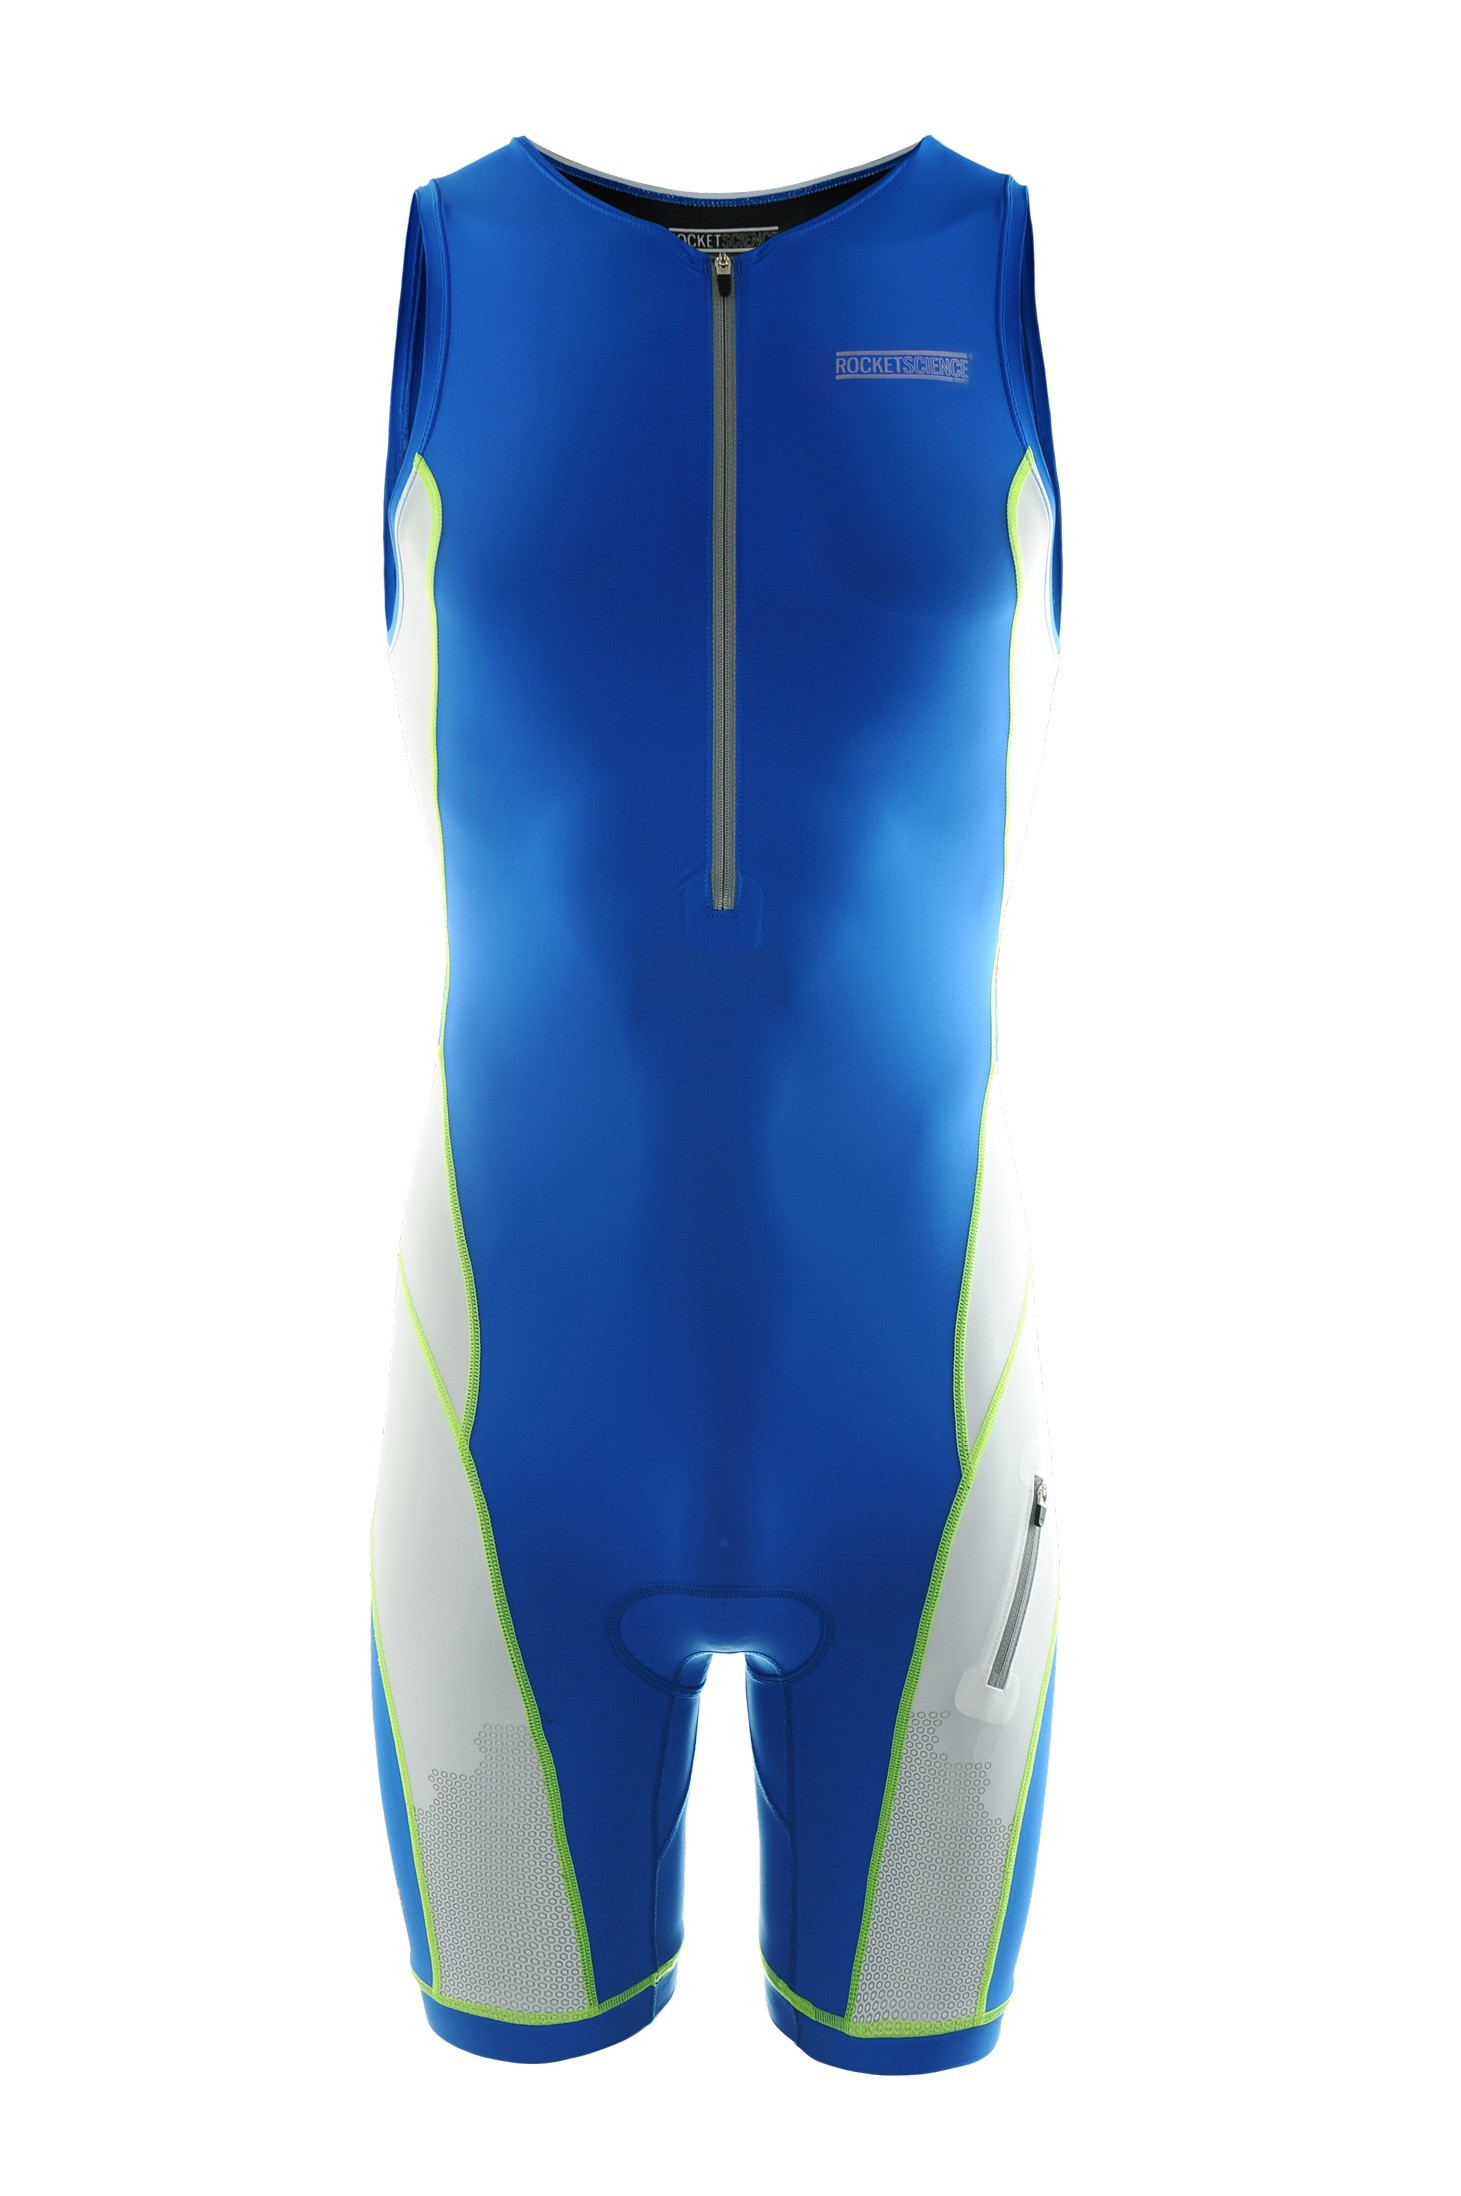 Rocket science sports tri suit